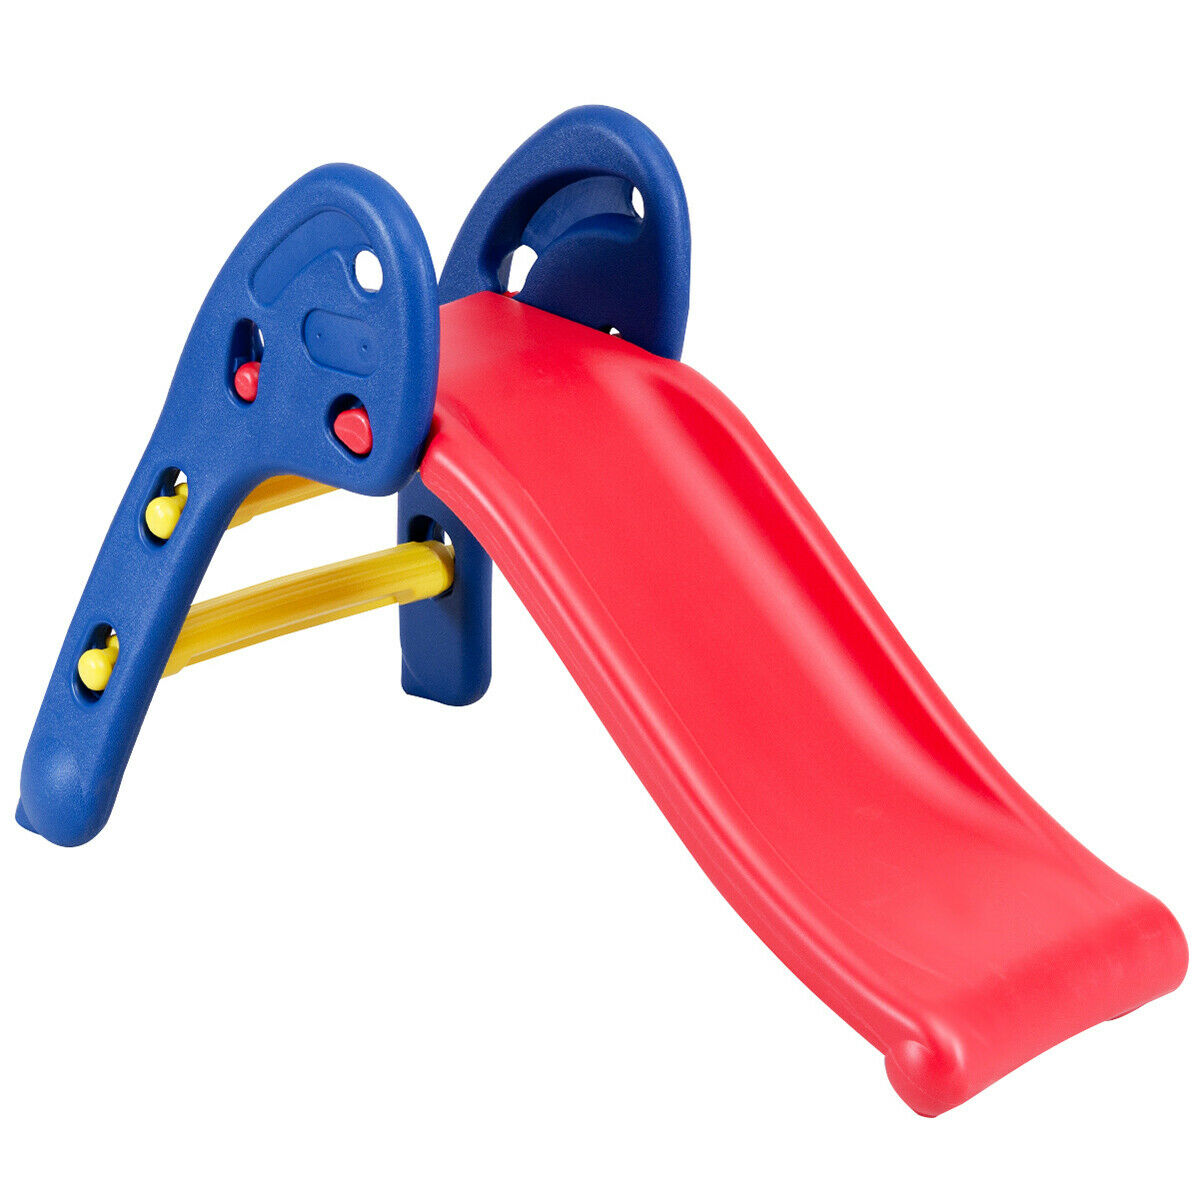 Gymax Step 2 Children Folding Slide Plastic Fun Toy Up-down For Kids Indoor & Outdoor